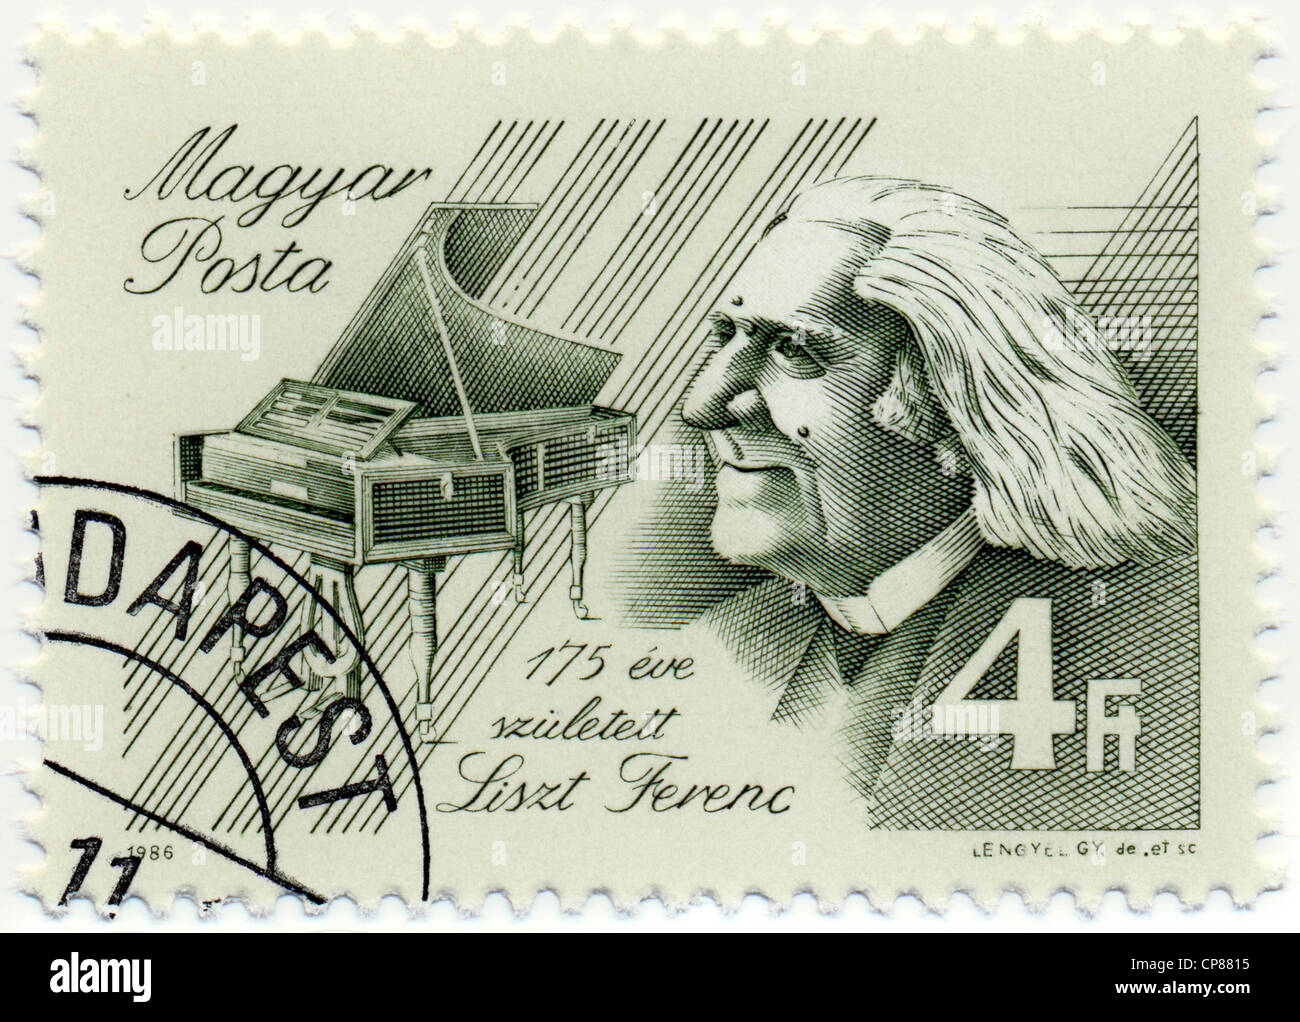 Historic postage stamps from Hungary, Historische Briefmarke, Franz Liszt, 1986, Ungarn, Europa - Stock Image